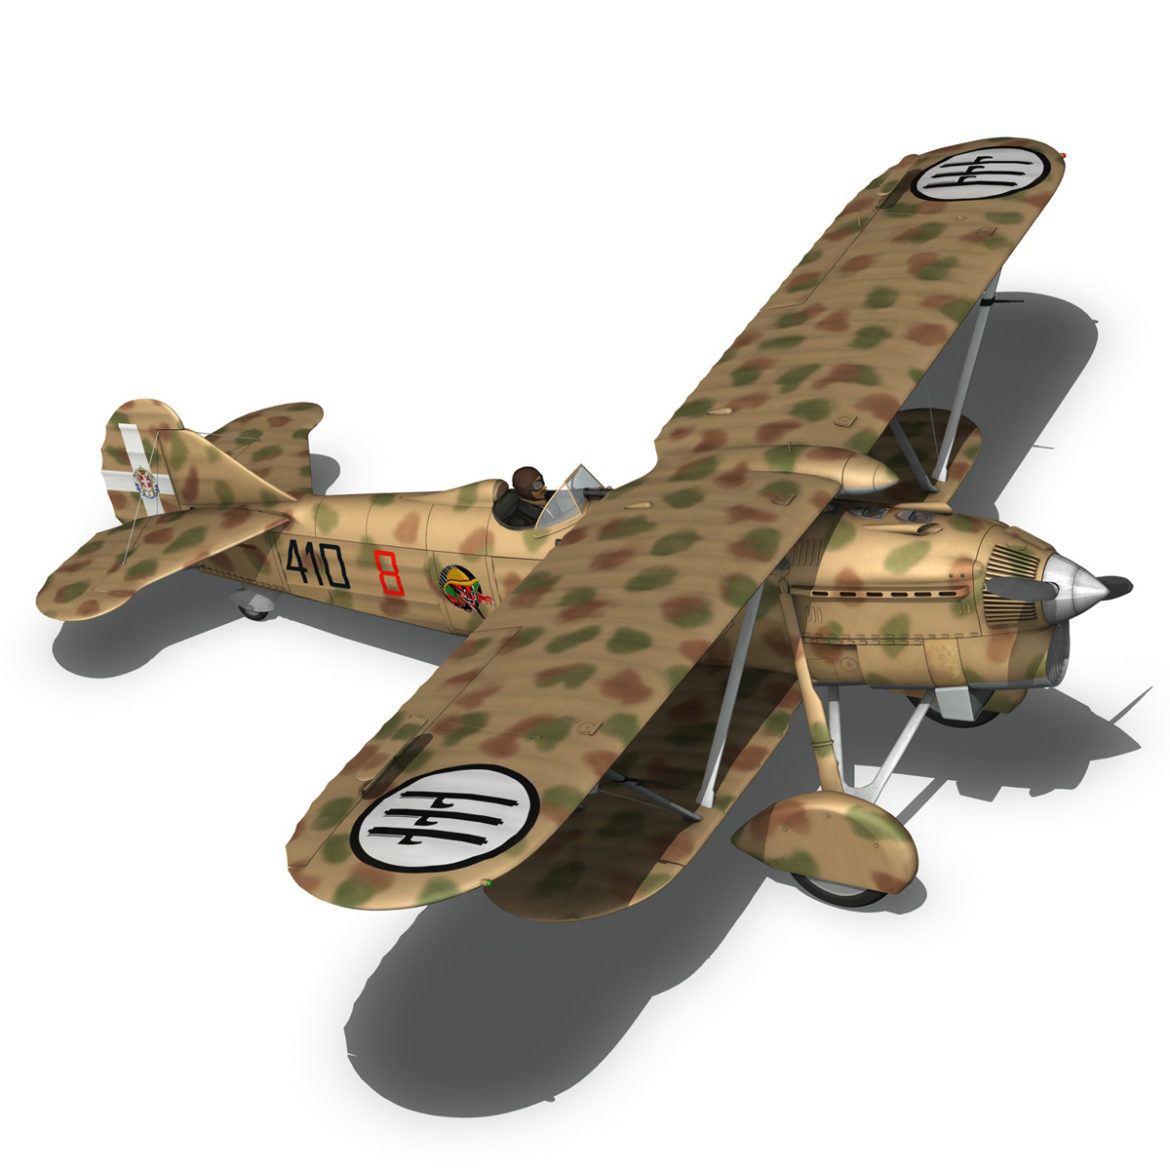 fiat cr.32 – italy airforce – 410 squadriglia 3d model fbx c4d lwo obj 307551